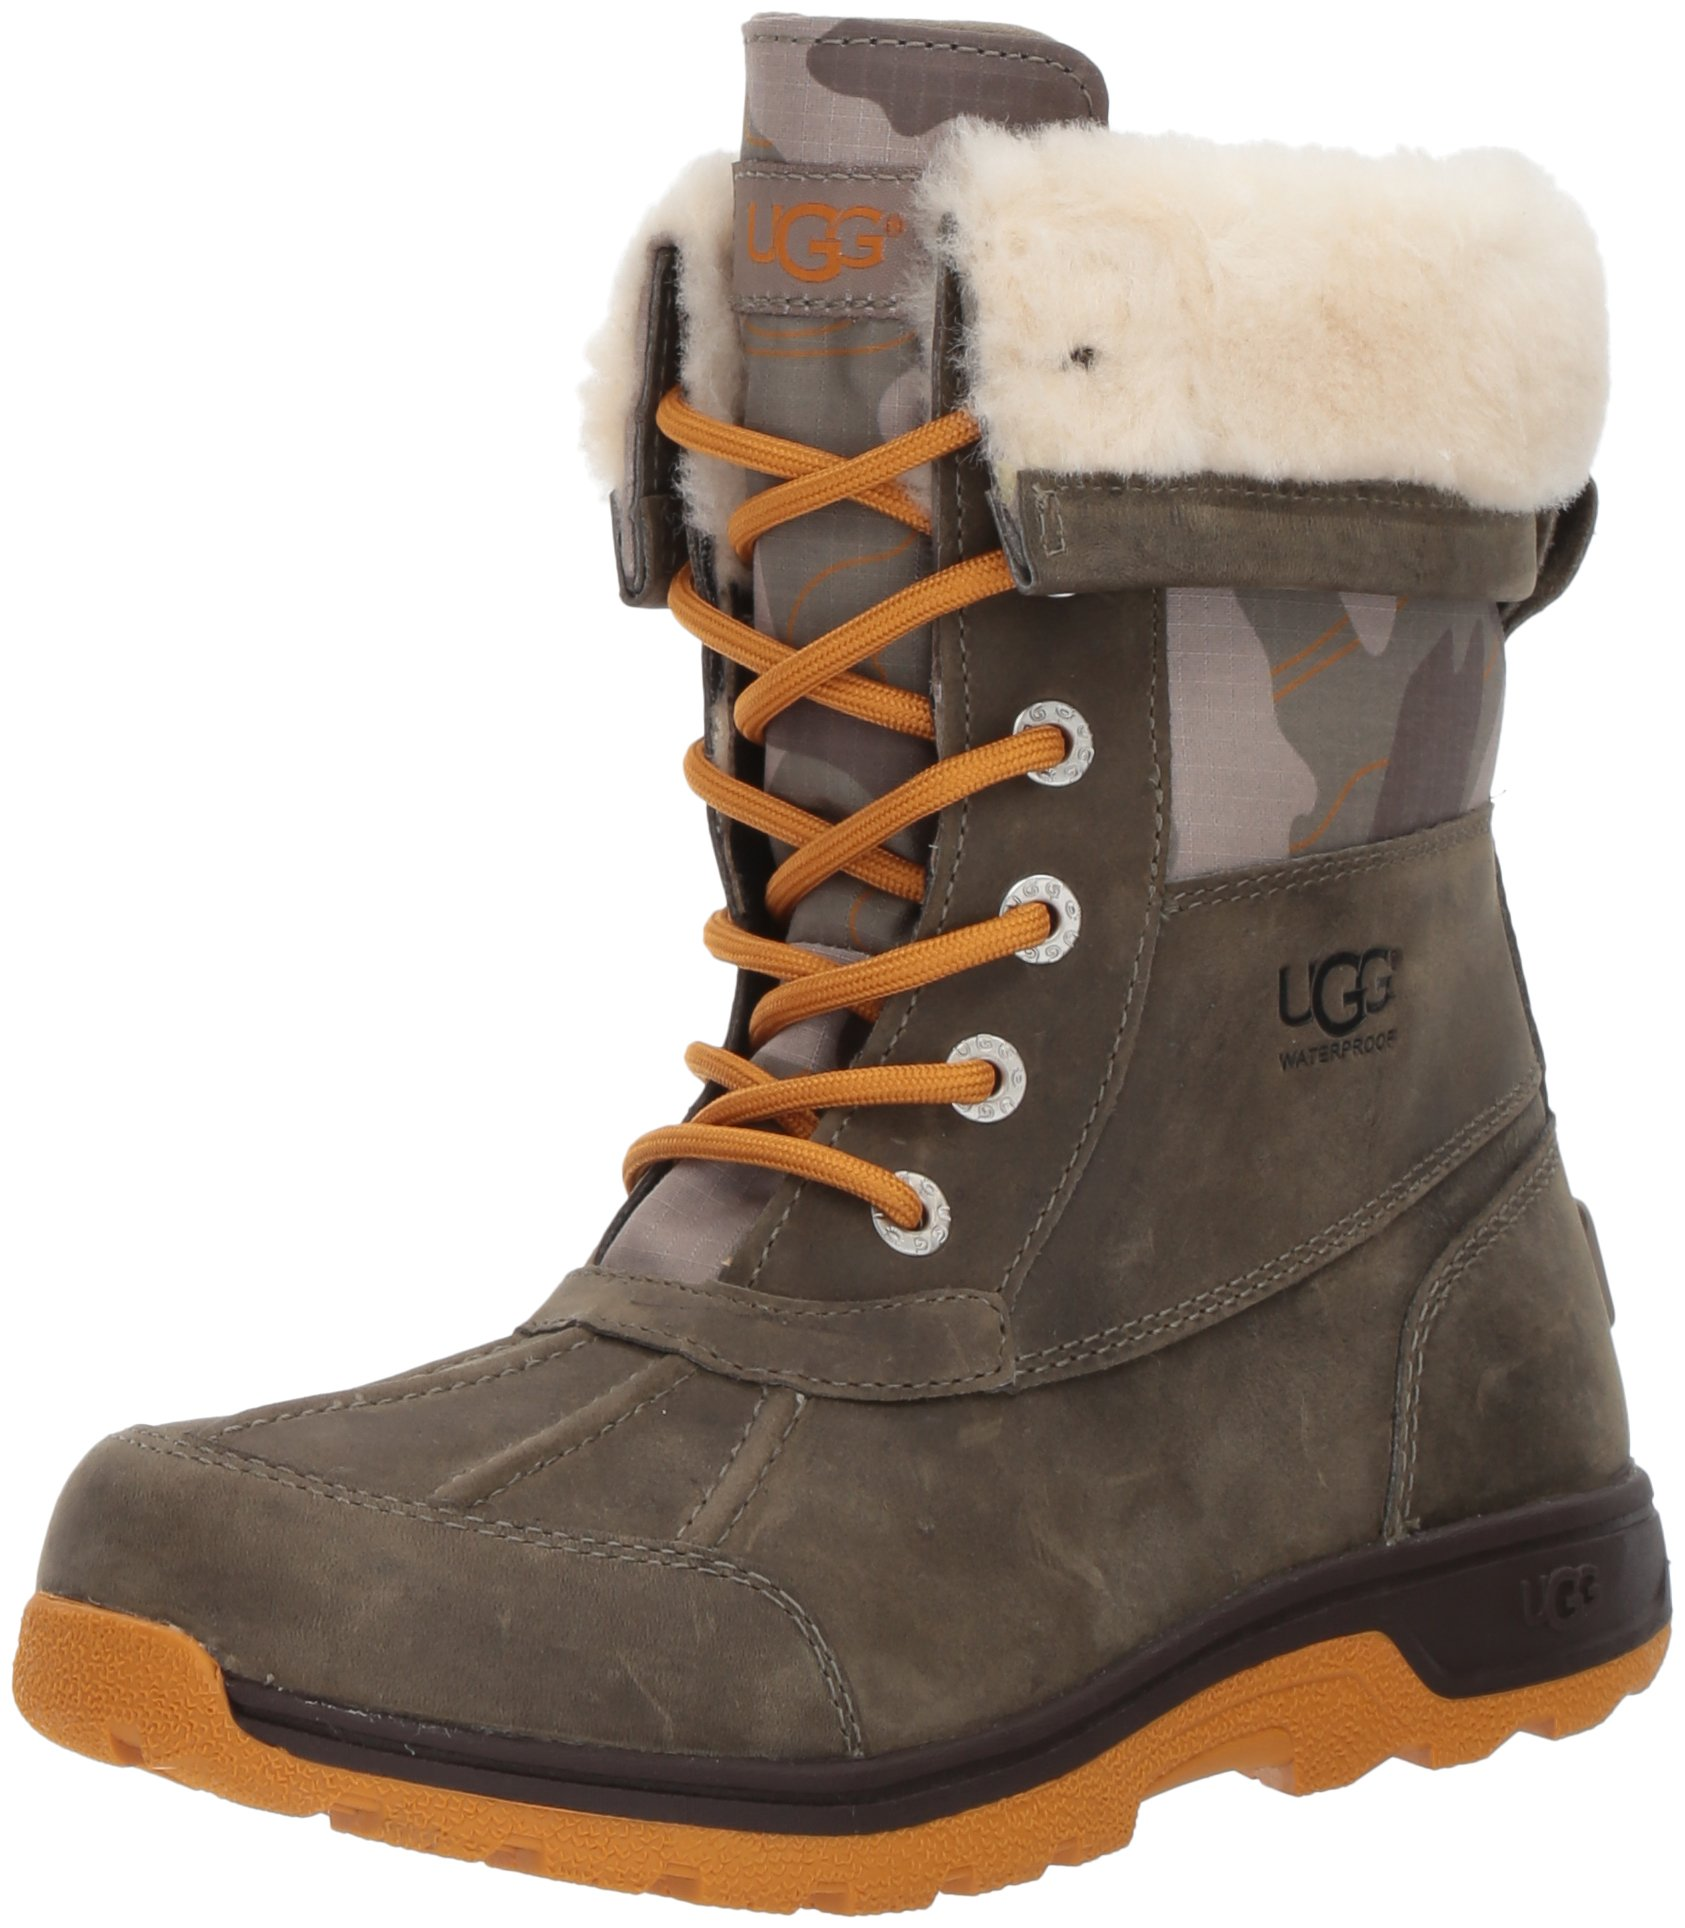 UGG Kids K Butte II Camo Lace-up Boot, Brindle, 11 M US Little Kid